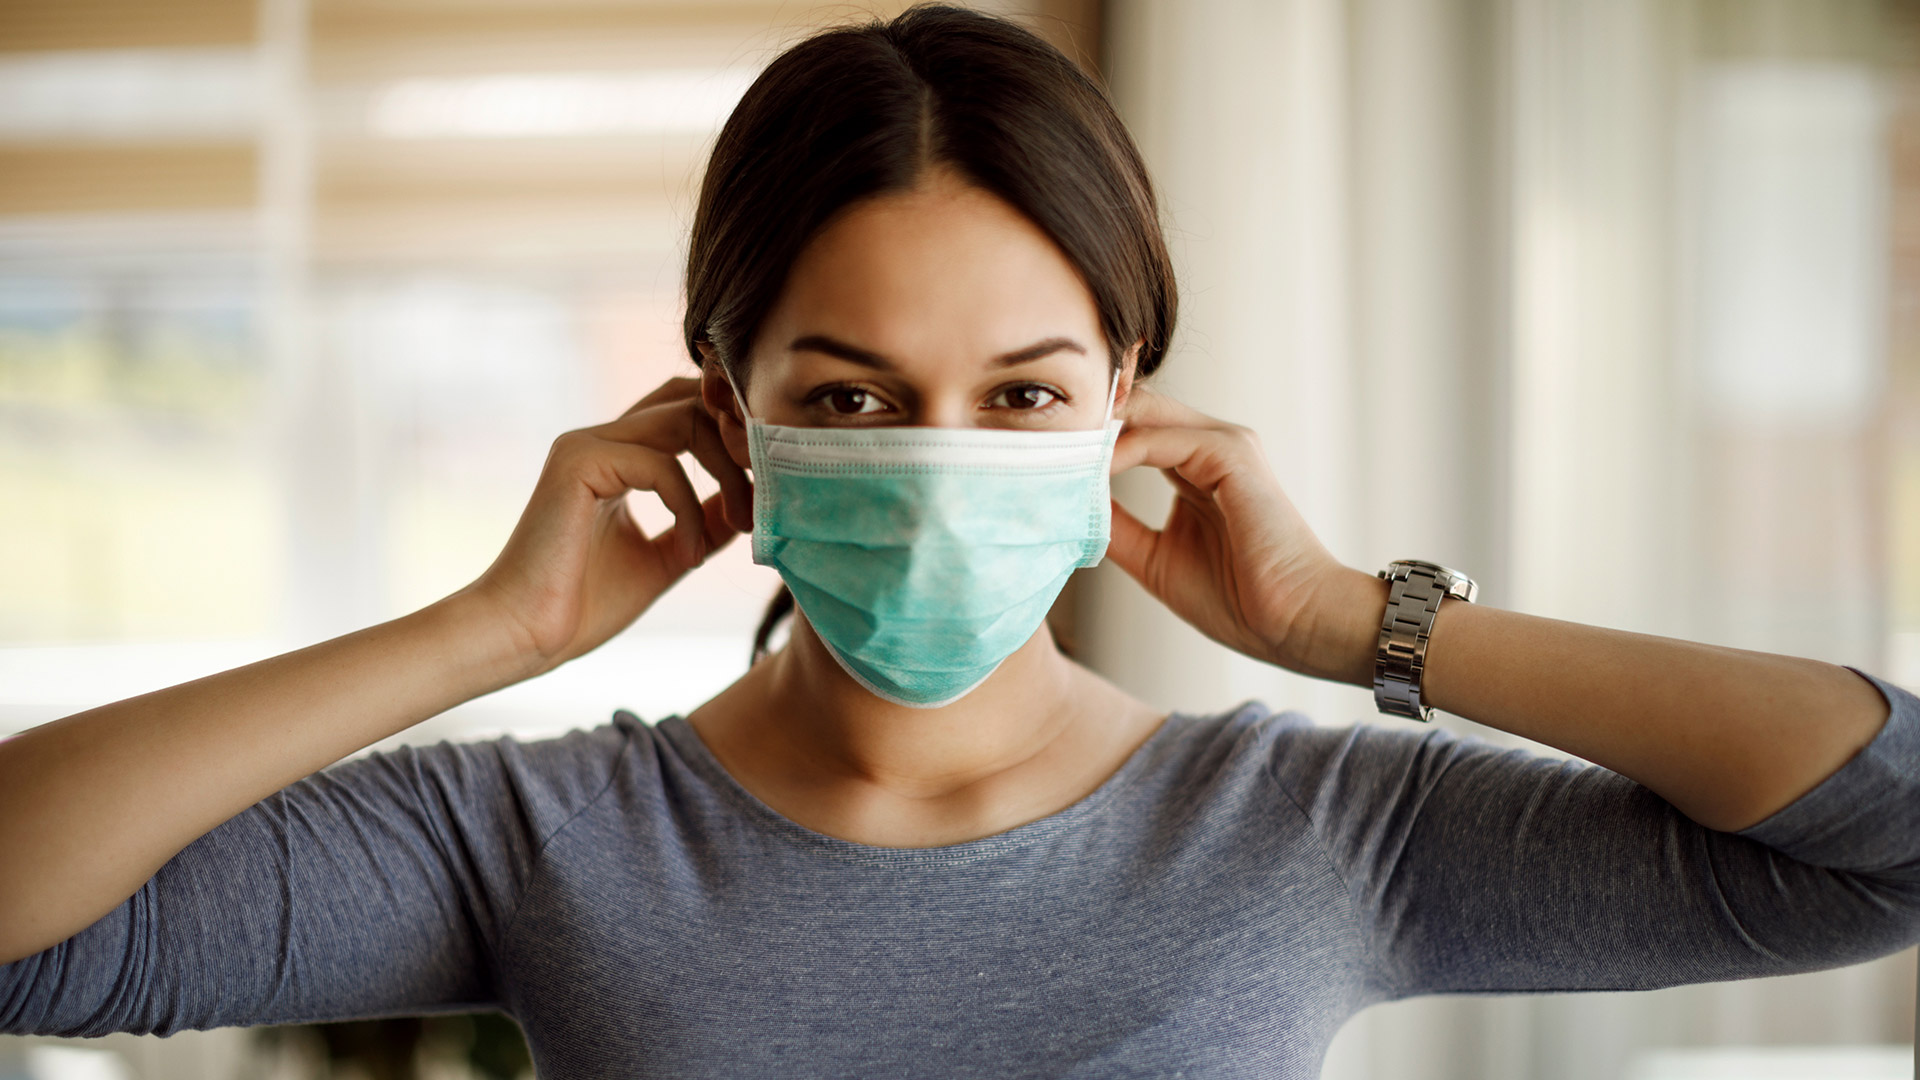 Woman in a grey shirt places a mask on her face as a preventitive measure against COVID-19.